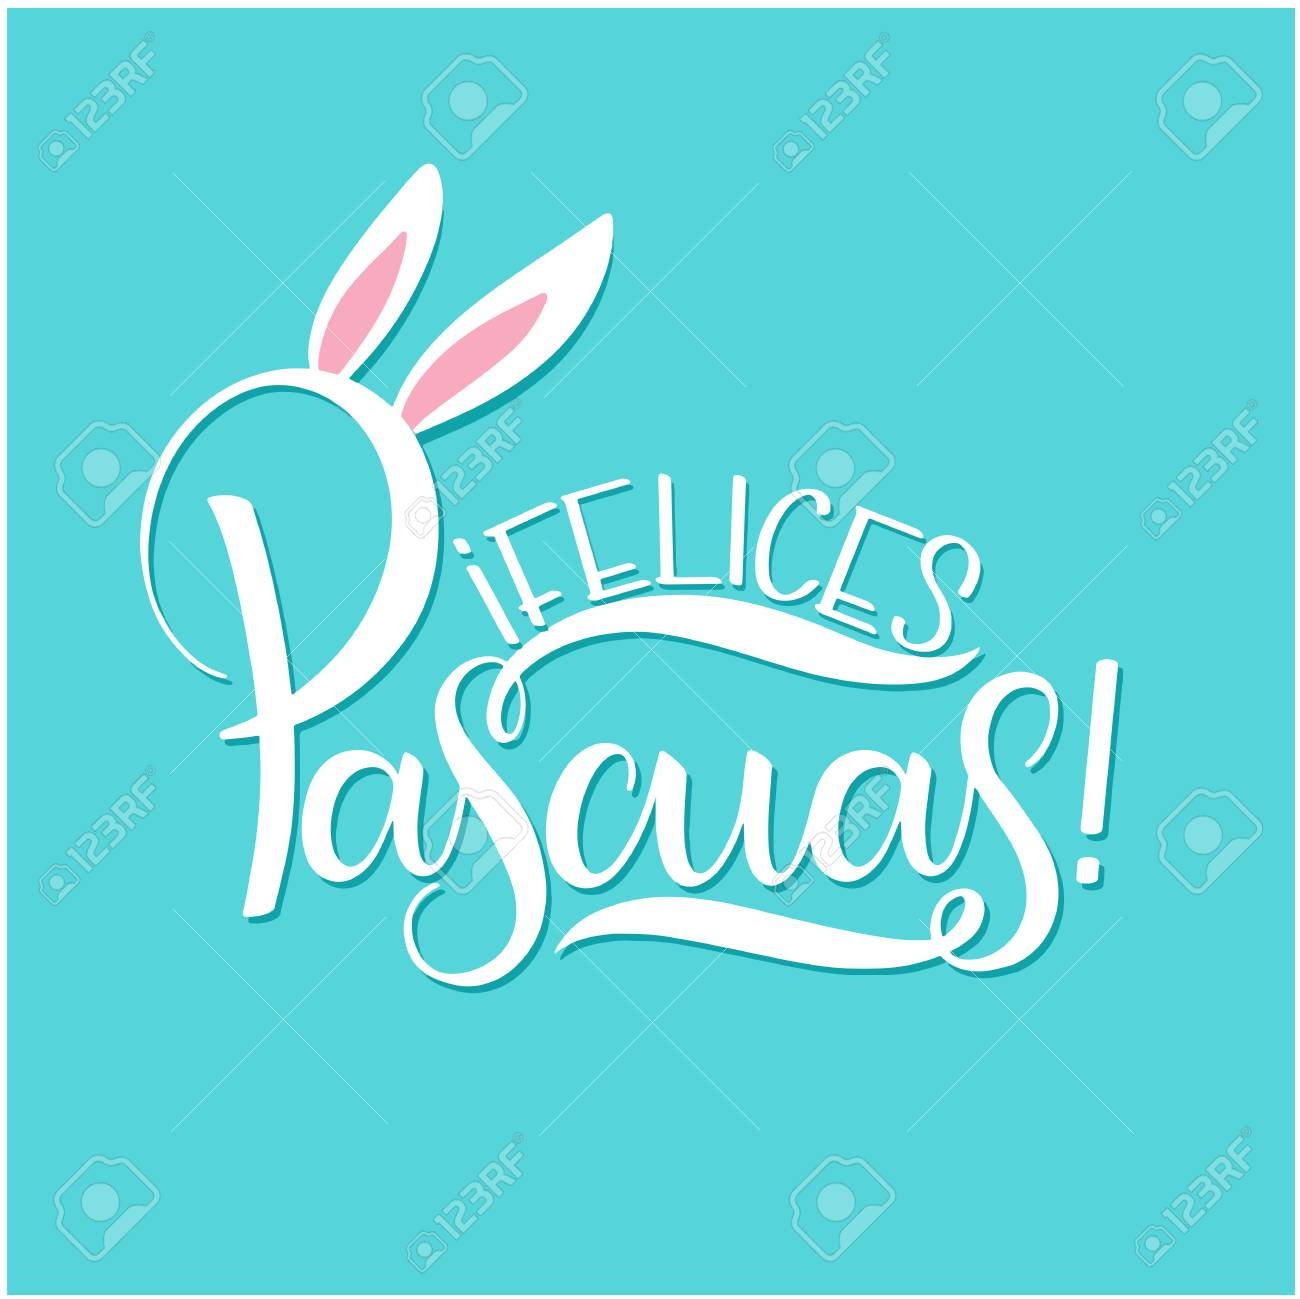 Feliz Pascua Colorful Lettering Happy Easter Lettering In Spanish